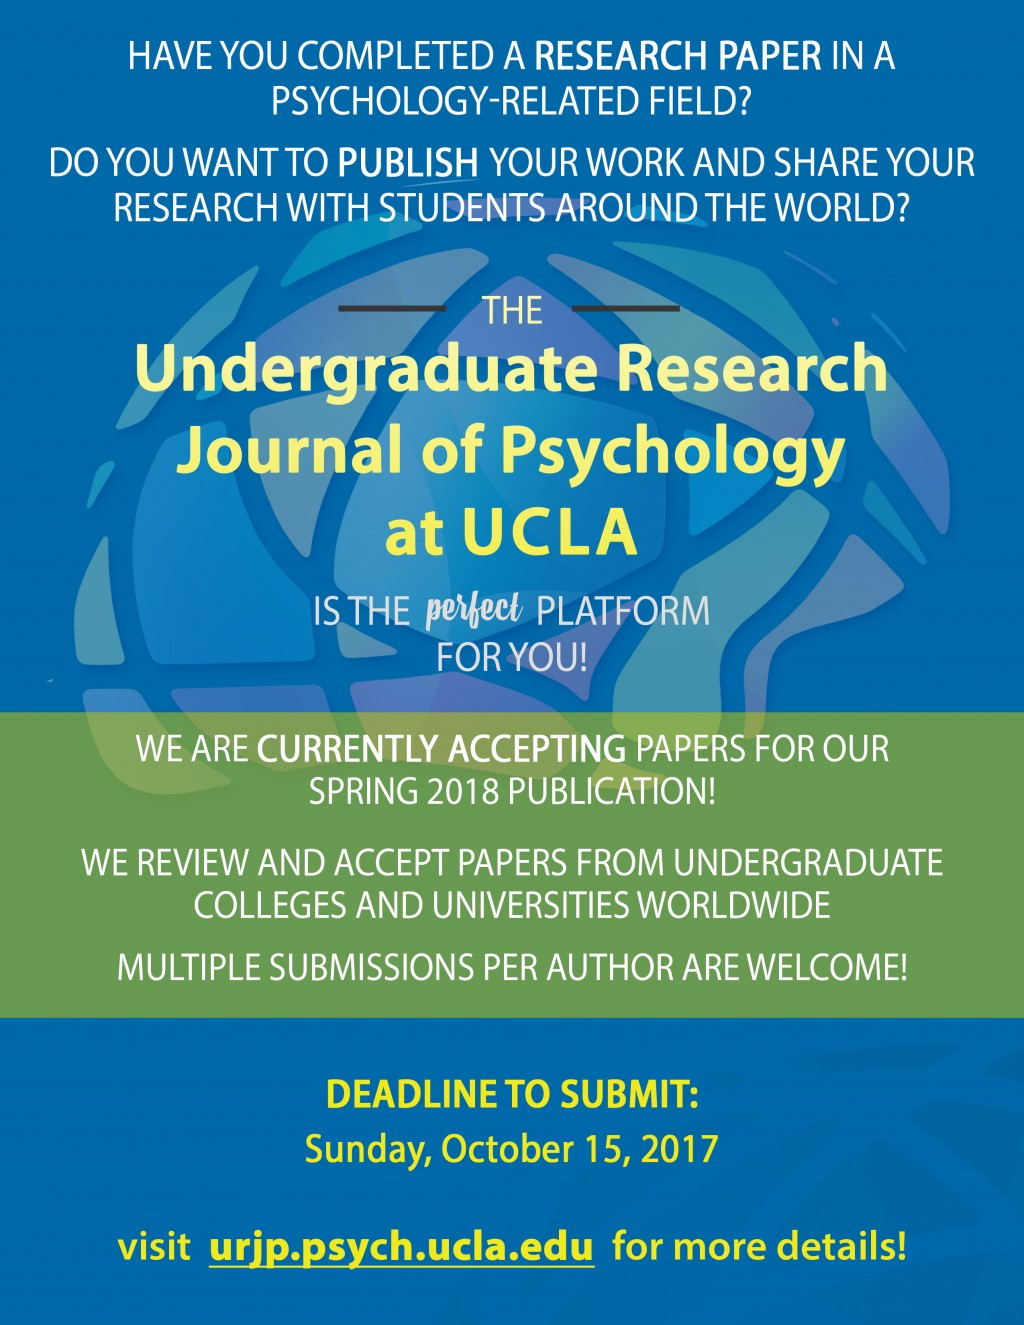 004 Submissions Open Research Paper How To Publish As An Marvelous A Undergraduate In India Large